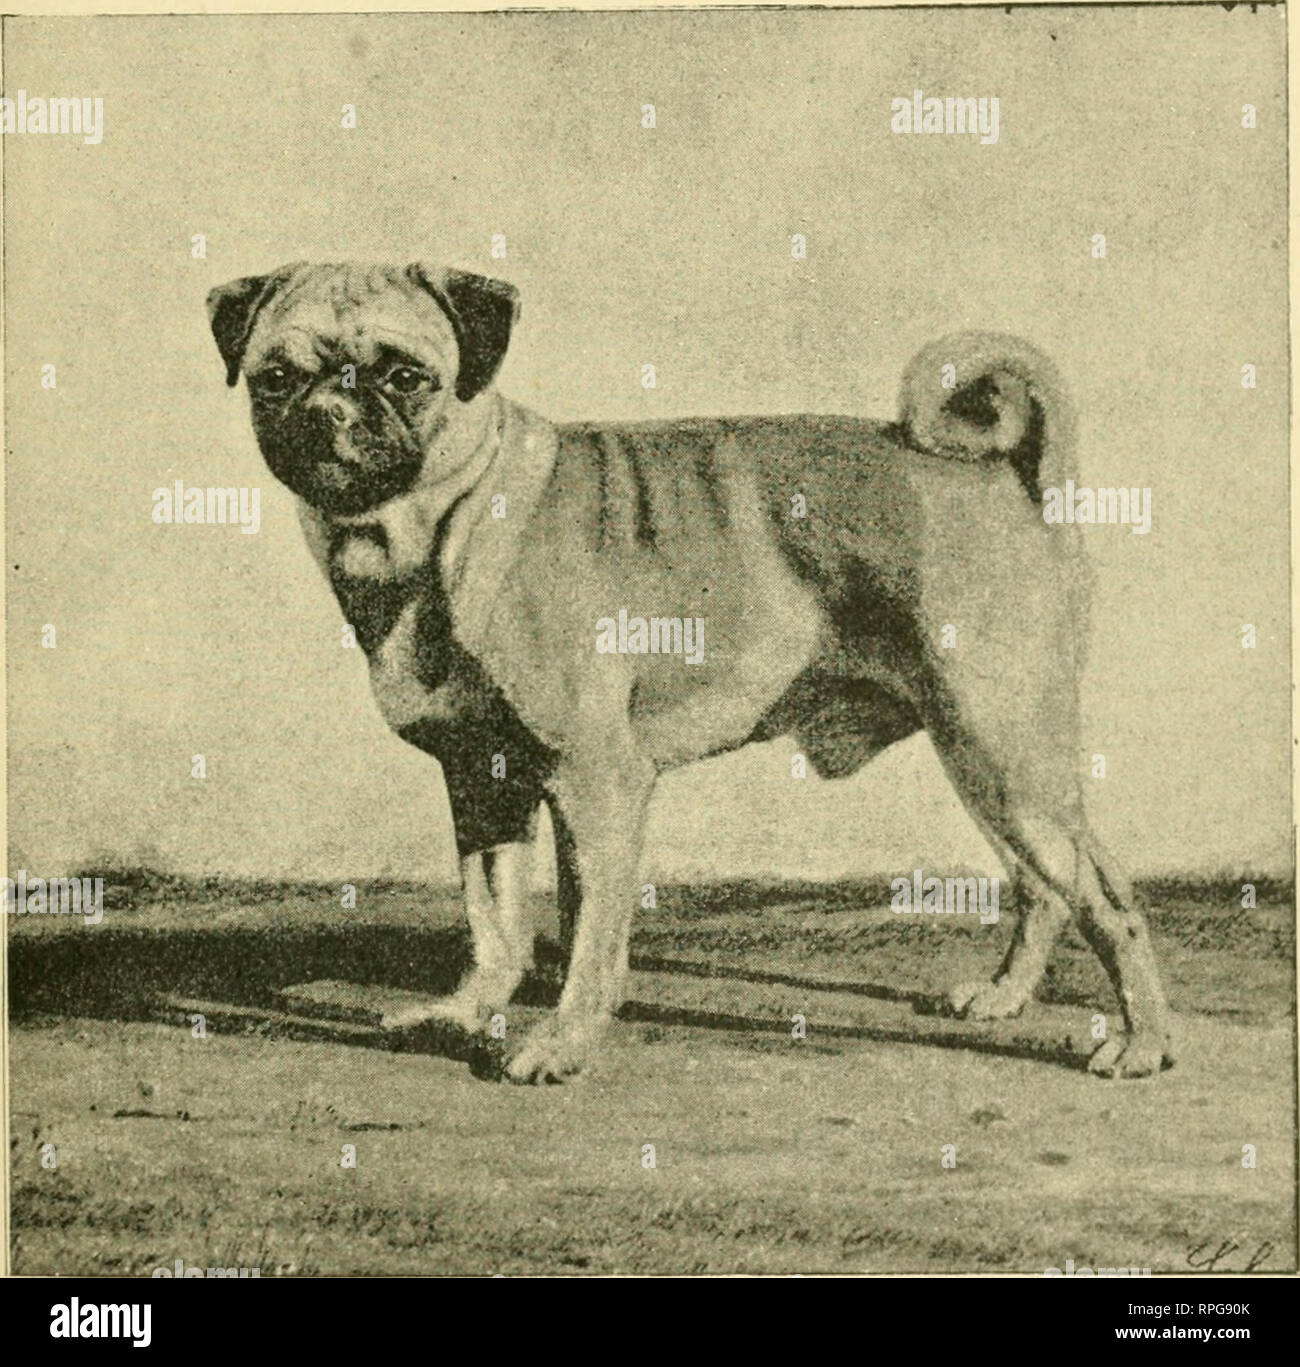 . The American book of the dog. The origin, development, special characteristics, utility, breeding, training, points of judging, diseases, and kennel management of all breeds of dogs. Dogs. THE PUG. 641 one of nature's most important laws. Strains are onl}' jjroperly sustained in tlieir purity by breeding to the best stock that can be had. In selecting a sire, never breed to a long-legged one; limit his weight to fifteen pounds, if possil)le. It is much easier to find a o-ood laru'p Pnix than a good small oiip.. Bred by Dr CHAMPION DUDE. M. H. Cryer, 1527 Arch street, Philadelphia, Penn. The  Stock Photo